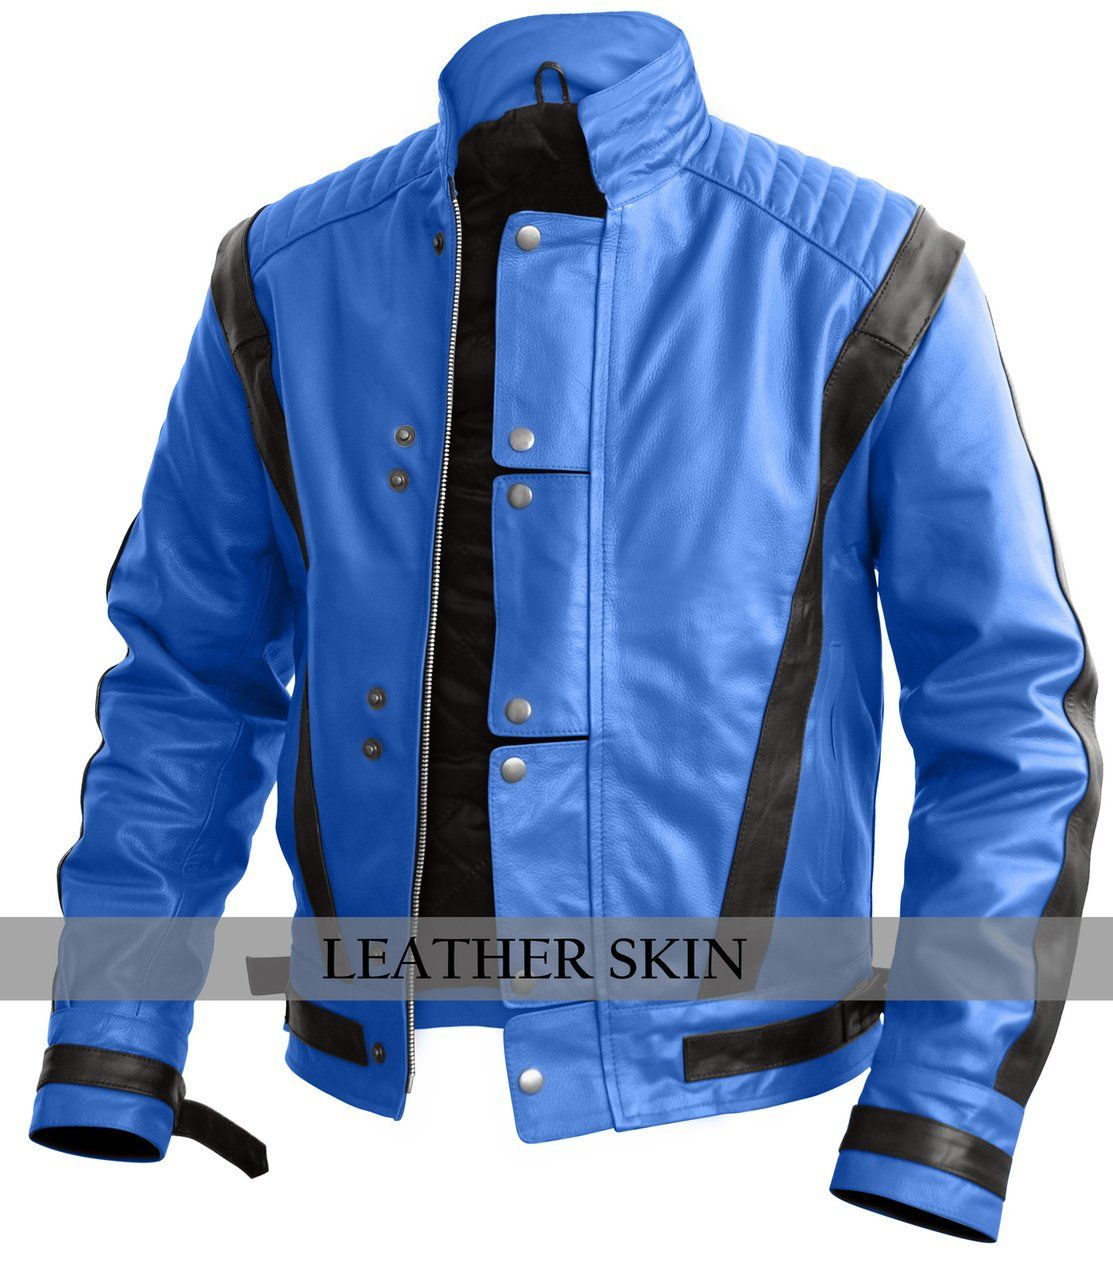 Leather Skin Men Blue Thriller Genuine Leather Jacket with